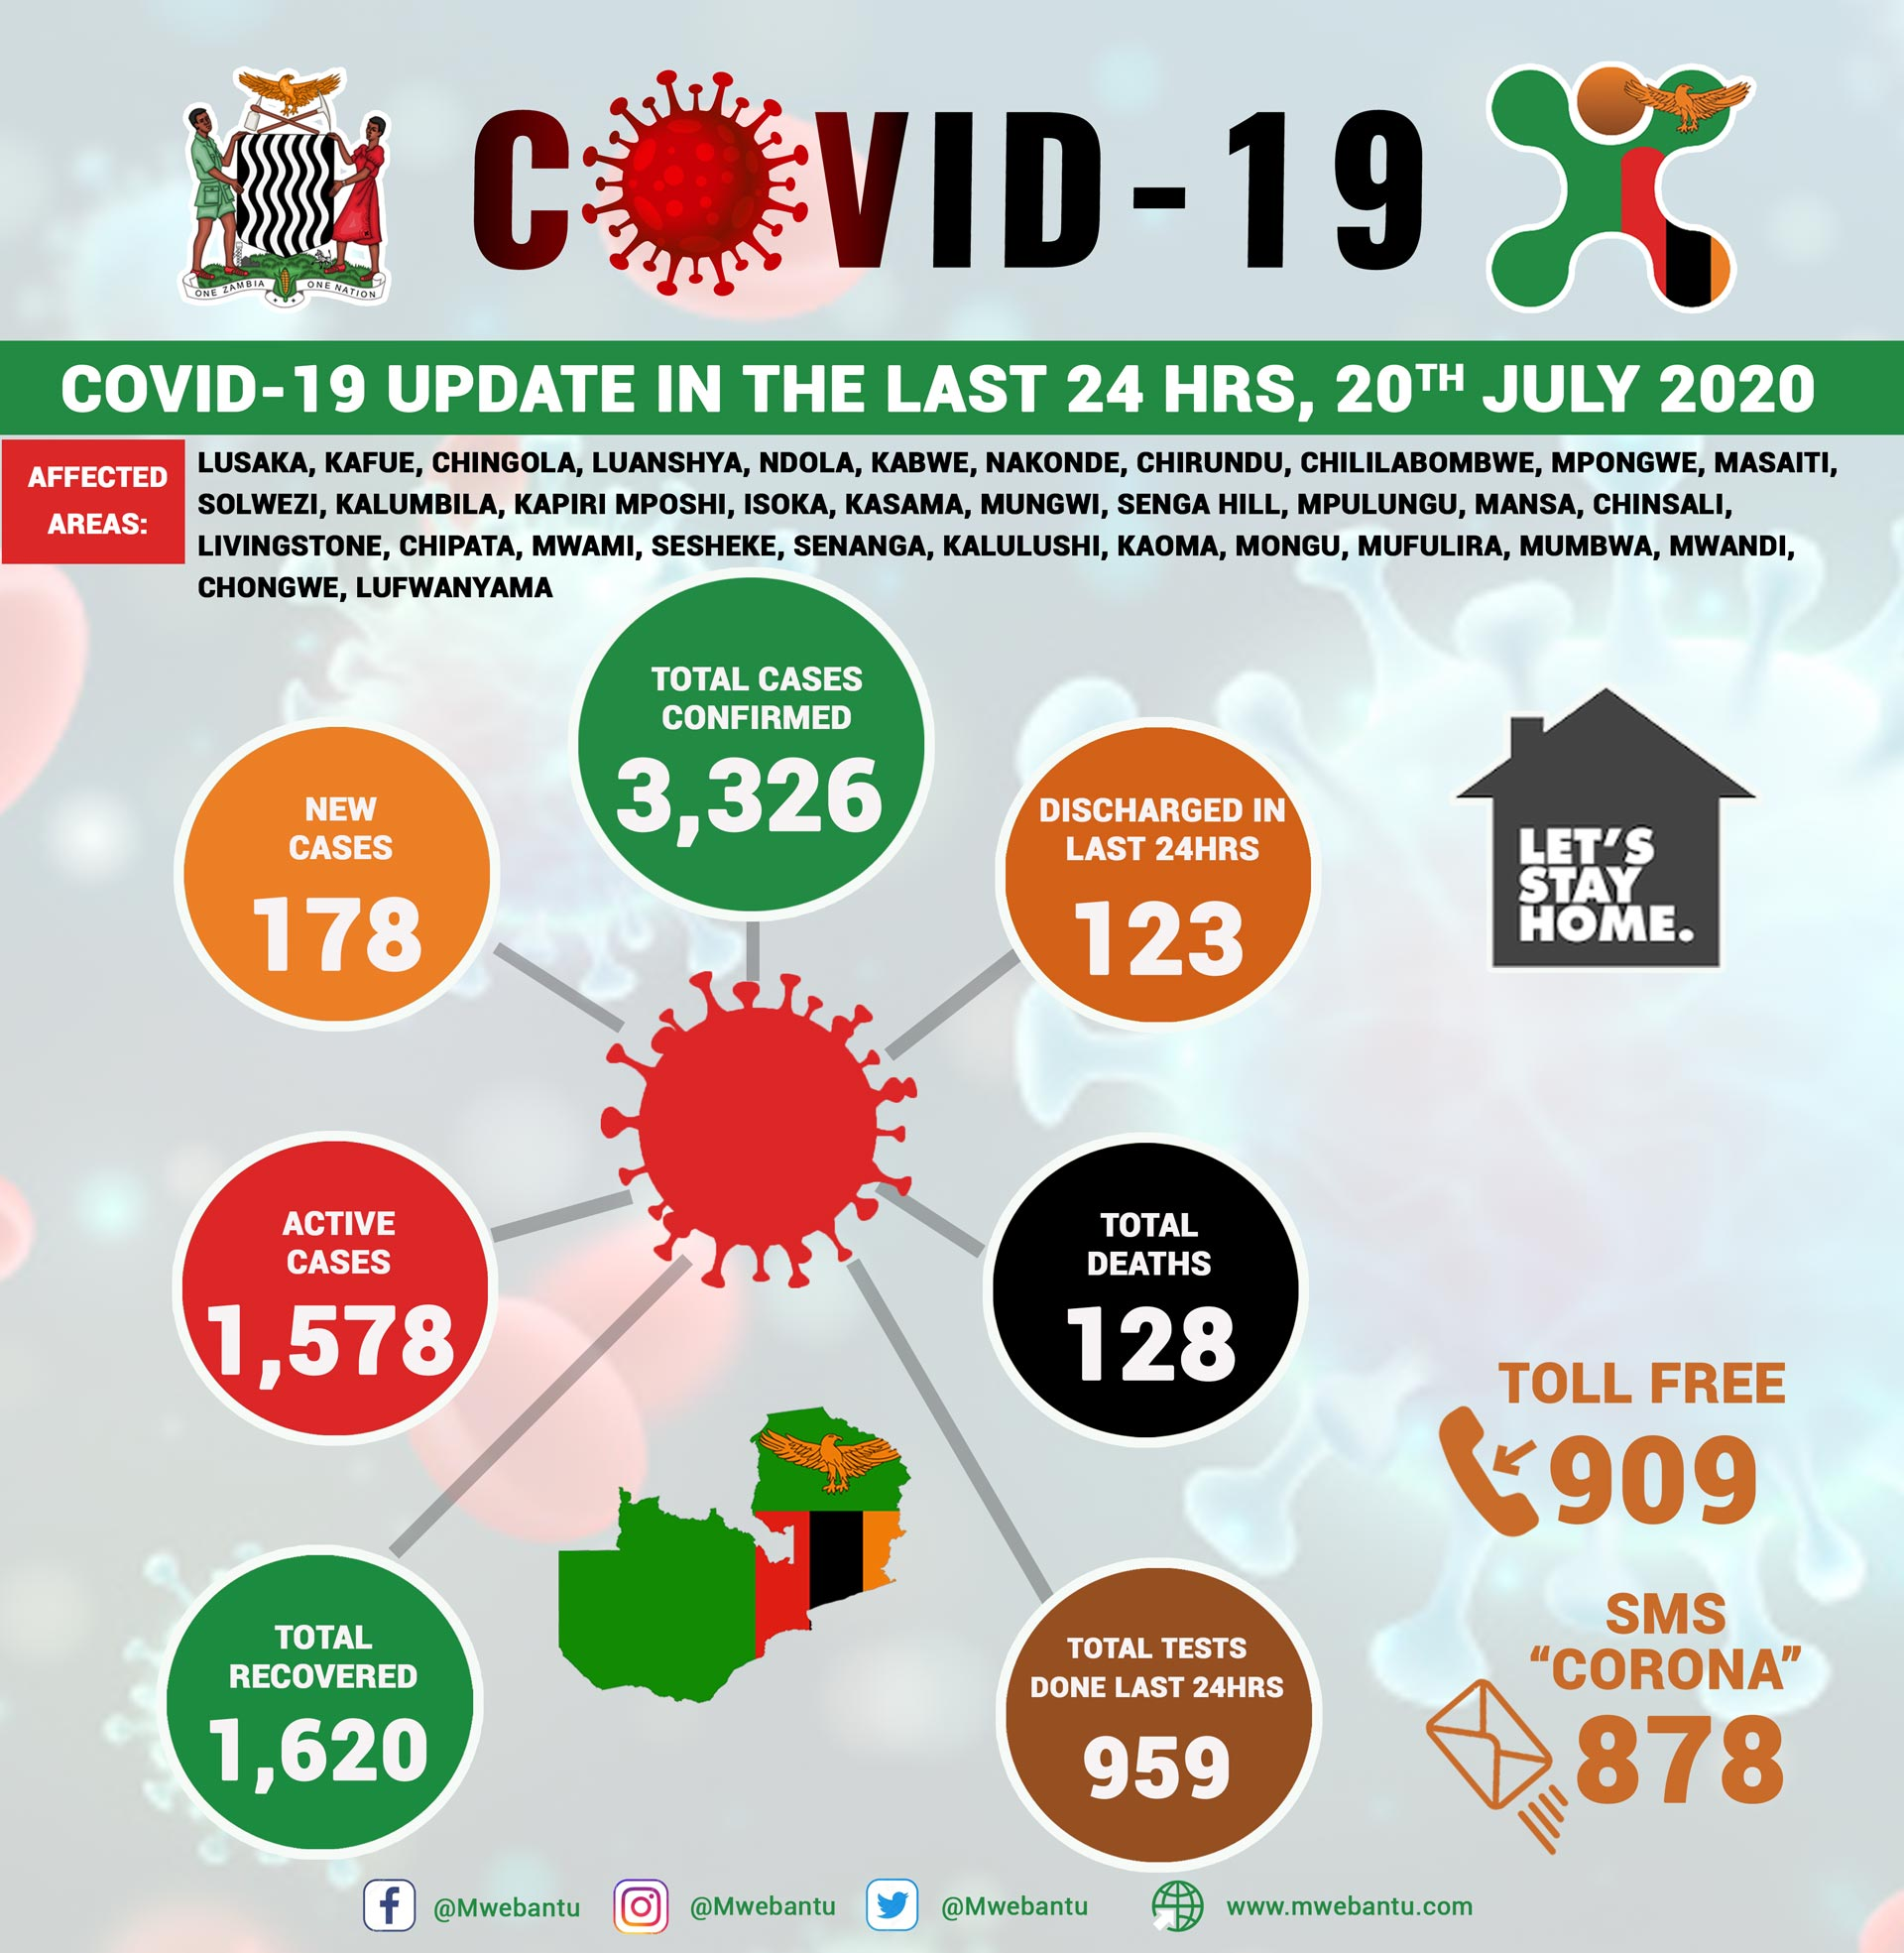 Covid-19 pandemic update 20th july in Zambia